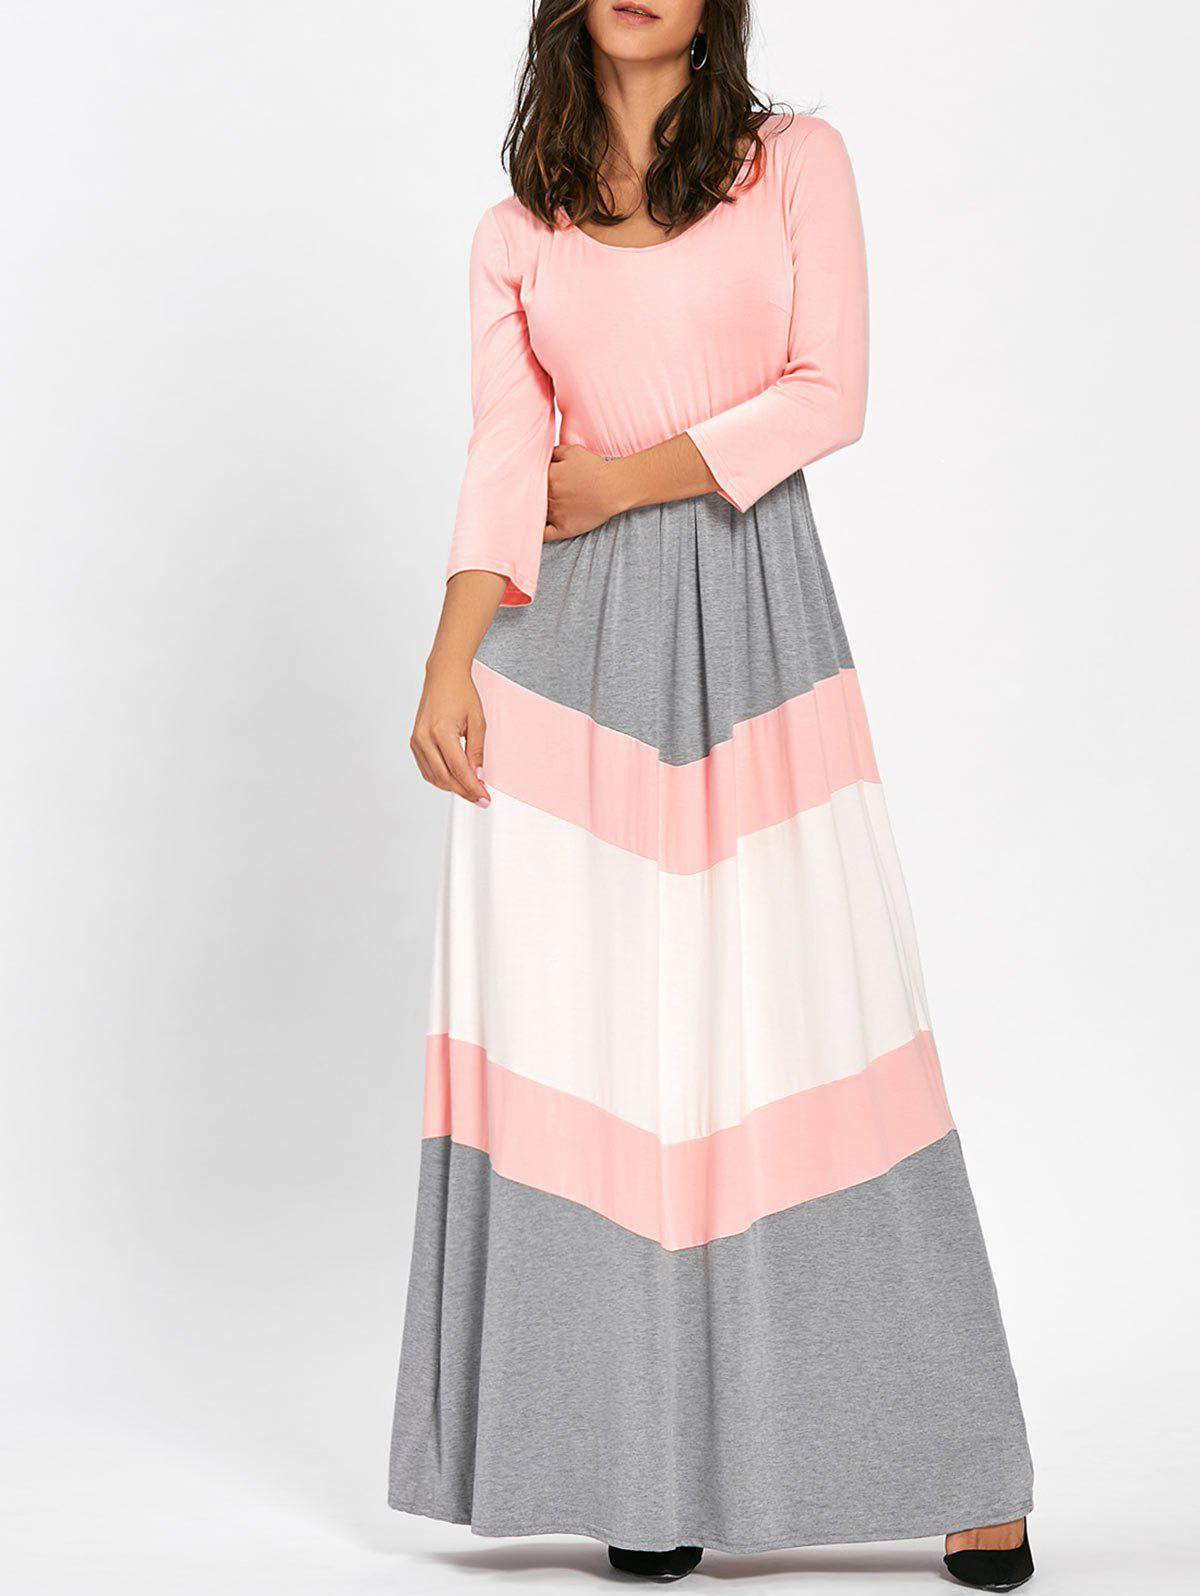 Scoop Neck Chevron Stripe Maxi Dress - PINK L